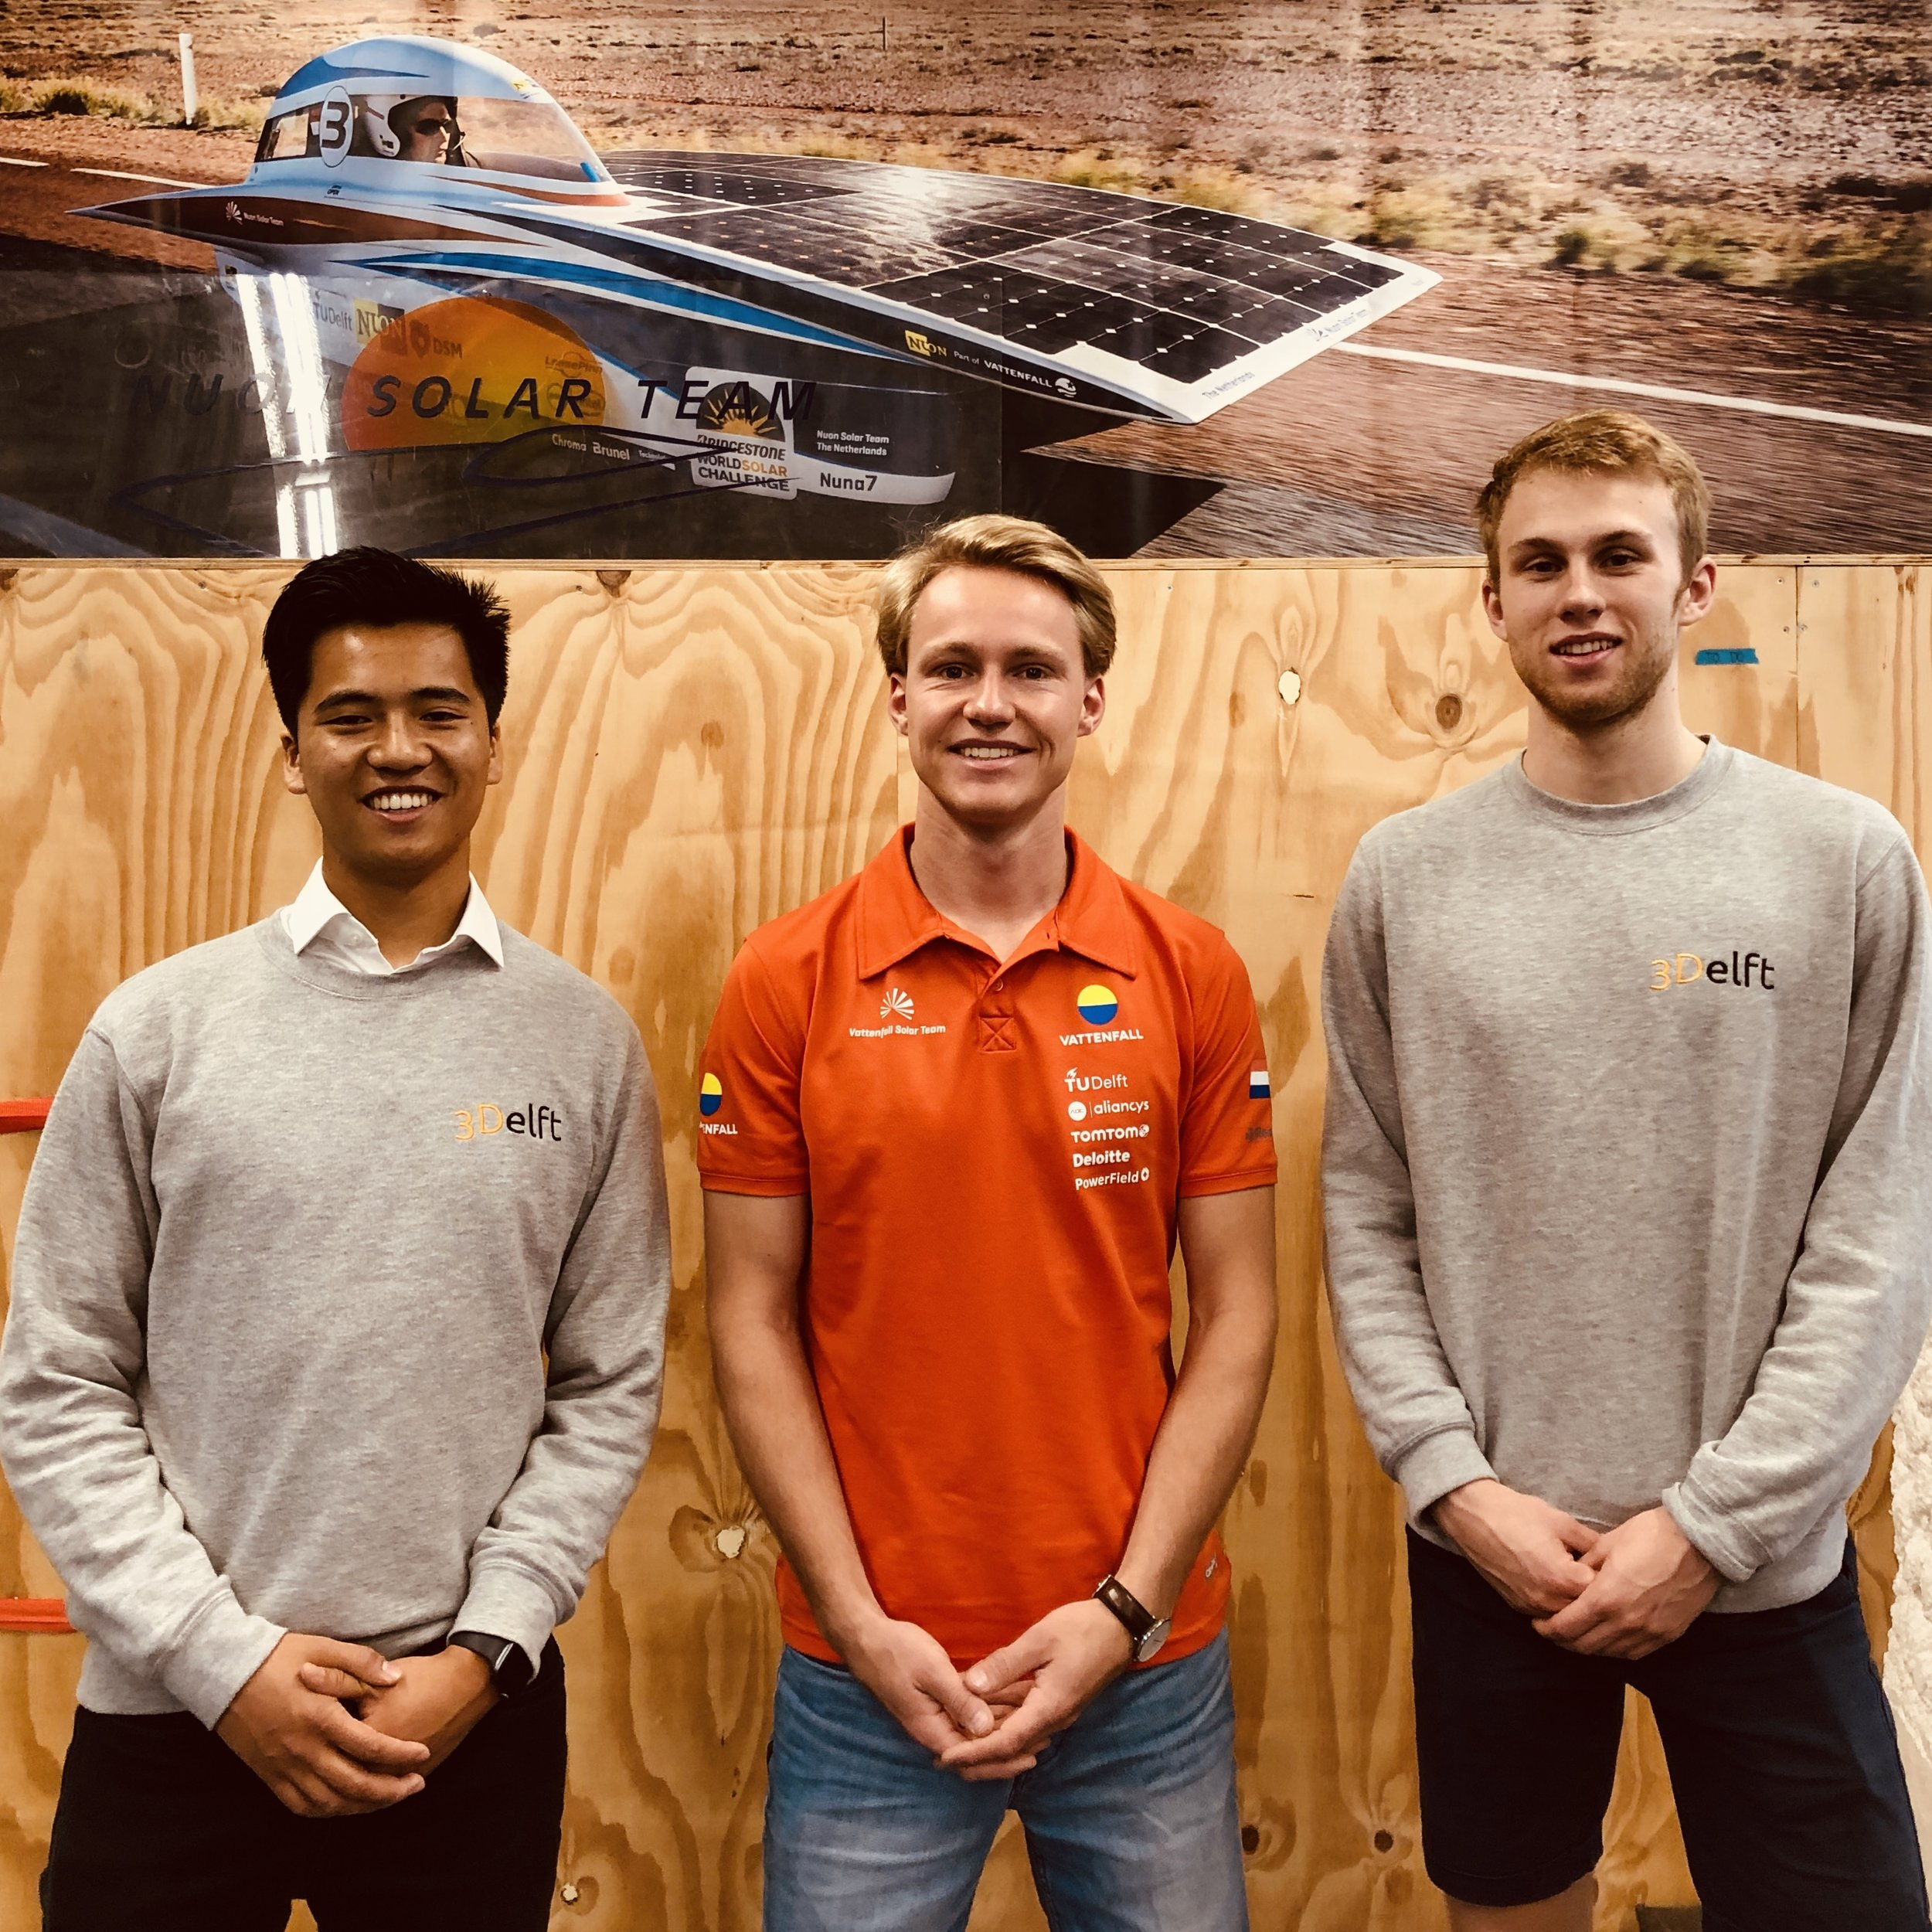 Vattenfall Solar Team - The Vattenfall Solar Team is aiming to build world's fastest solar car to win the Bridgestone World Solar Challenge 2019. We like to see how they show the possibilities of high-end technology and sustainable energy. Their next extraordinary creation will be NunaX. We are proud to contribute to NunaX by providing lightweight 3D printed parts, which are optimised by combining our knowledge of production and material sciences. Right now the intelligent techniques behind NunaX must stay a secret because of the tough competition. When the solar car is officially revealed, we will gladly update you with pictures of the integrated parts. We believe that the Vattenfall Solar Team will win the race and we wish them good luck with finalizing NunaX.To learn more about NunaX, visit their website.